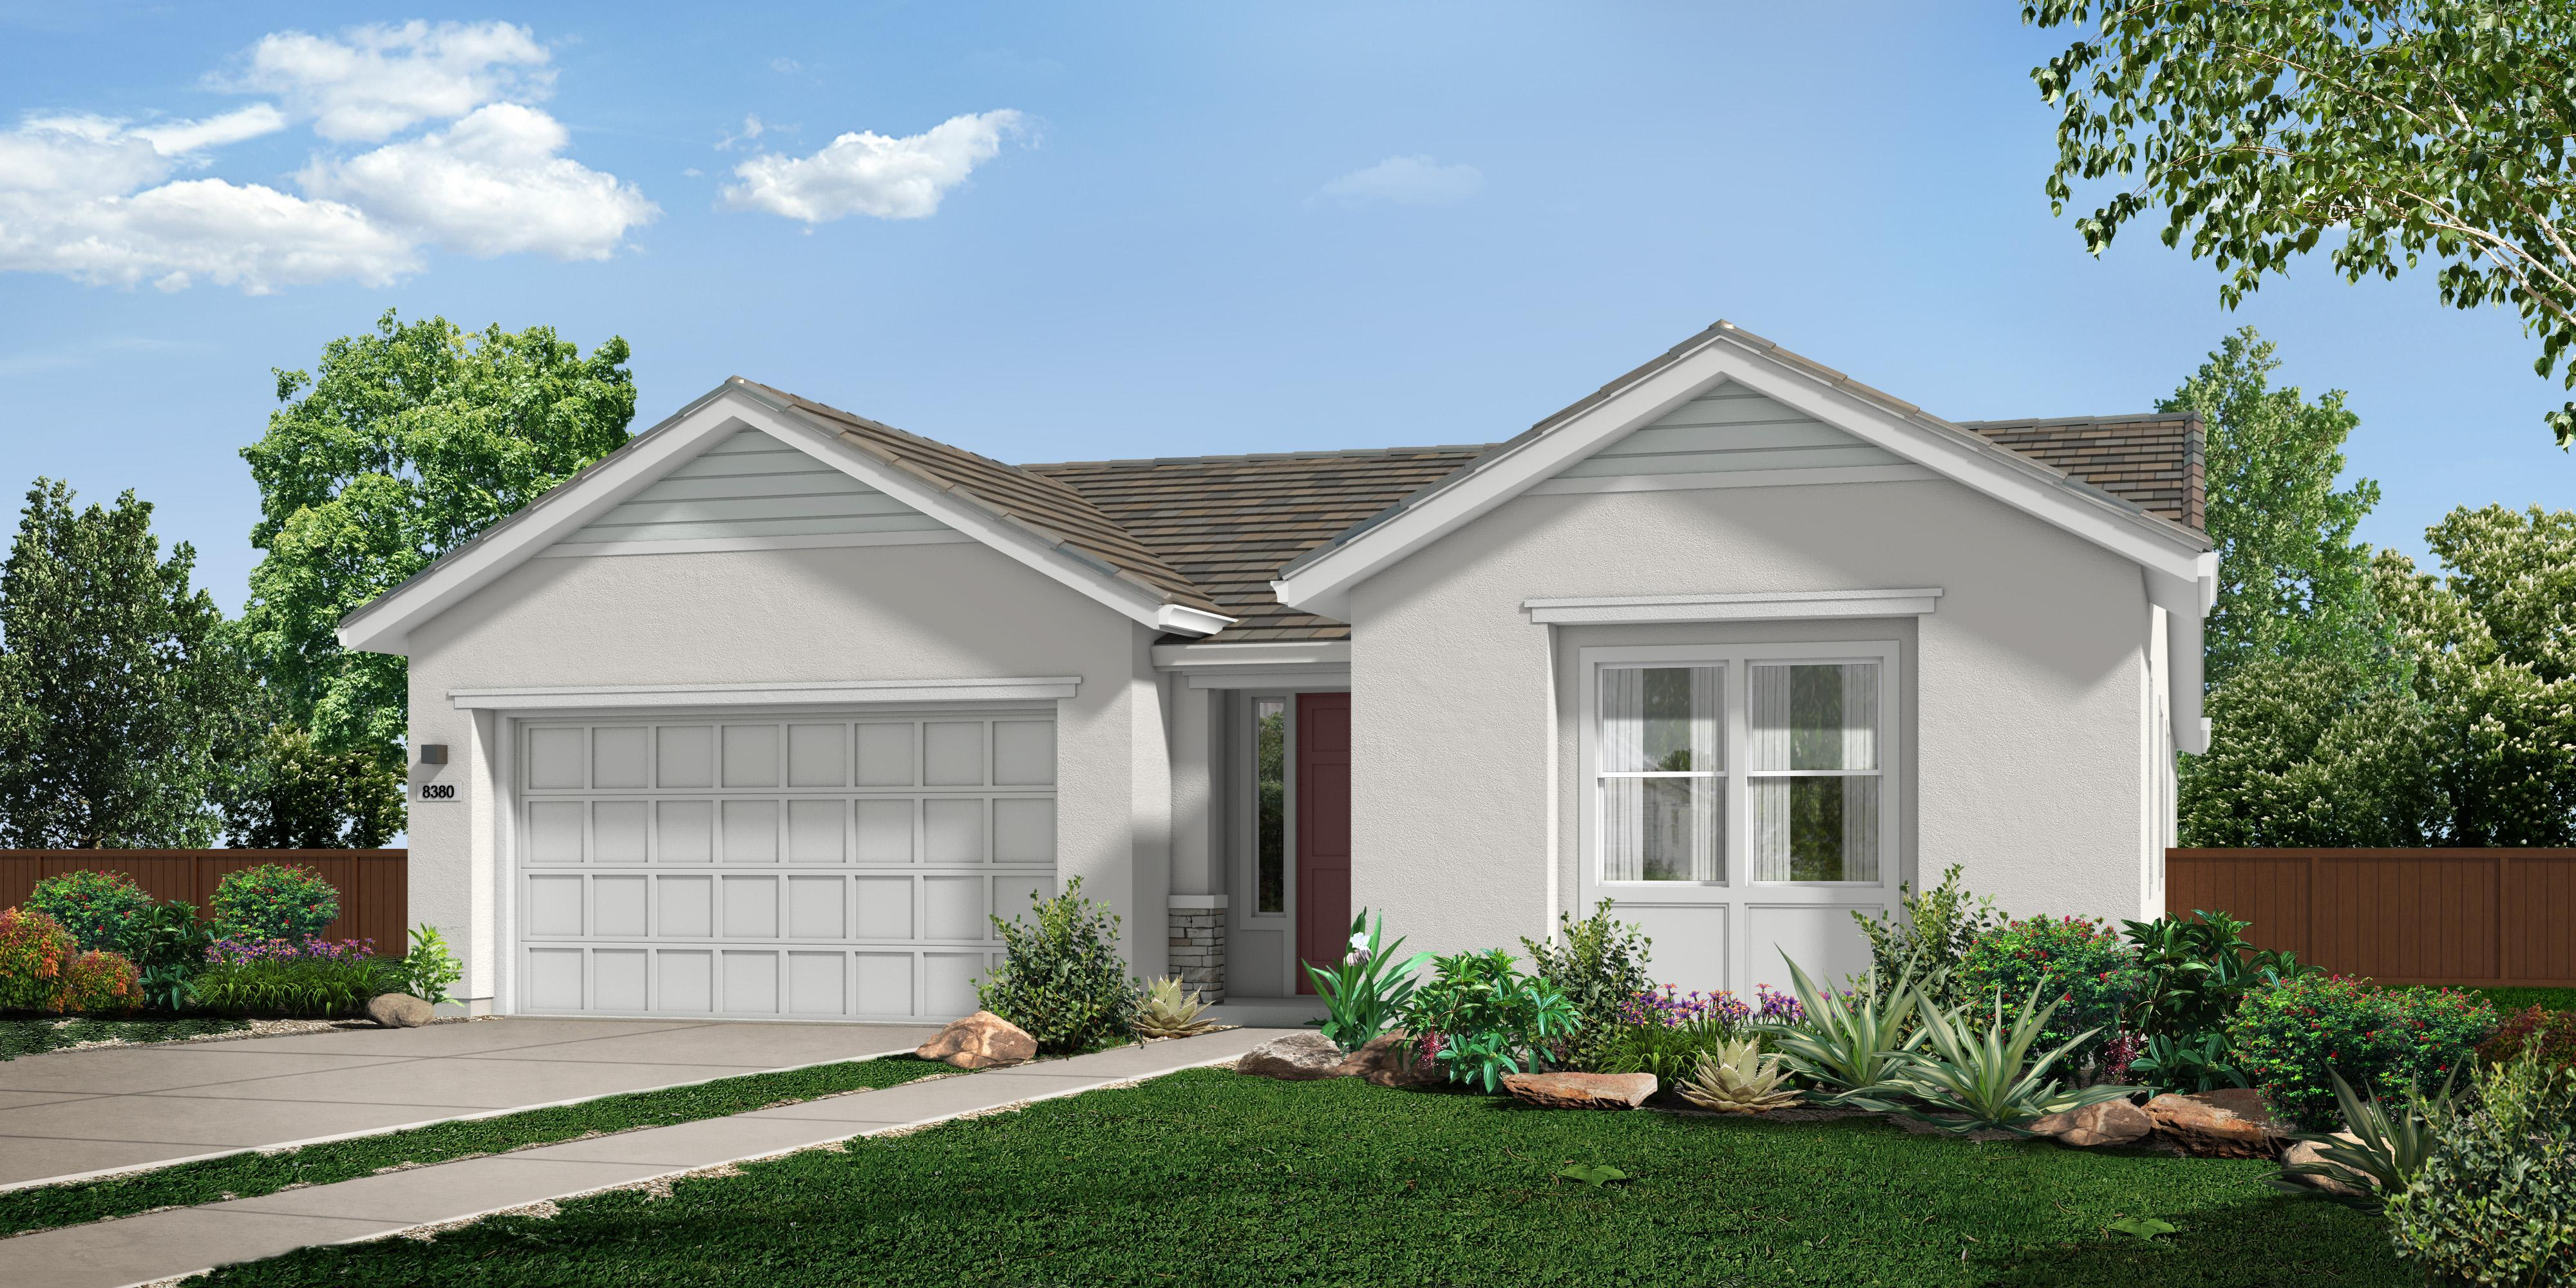 Exterior featured in the M_Residence 3 By Cresleigh Homes in Sacramento, CA